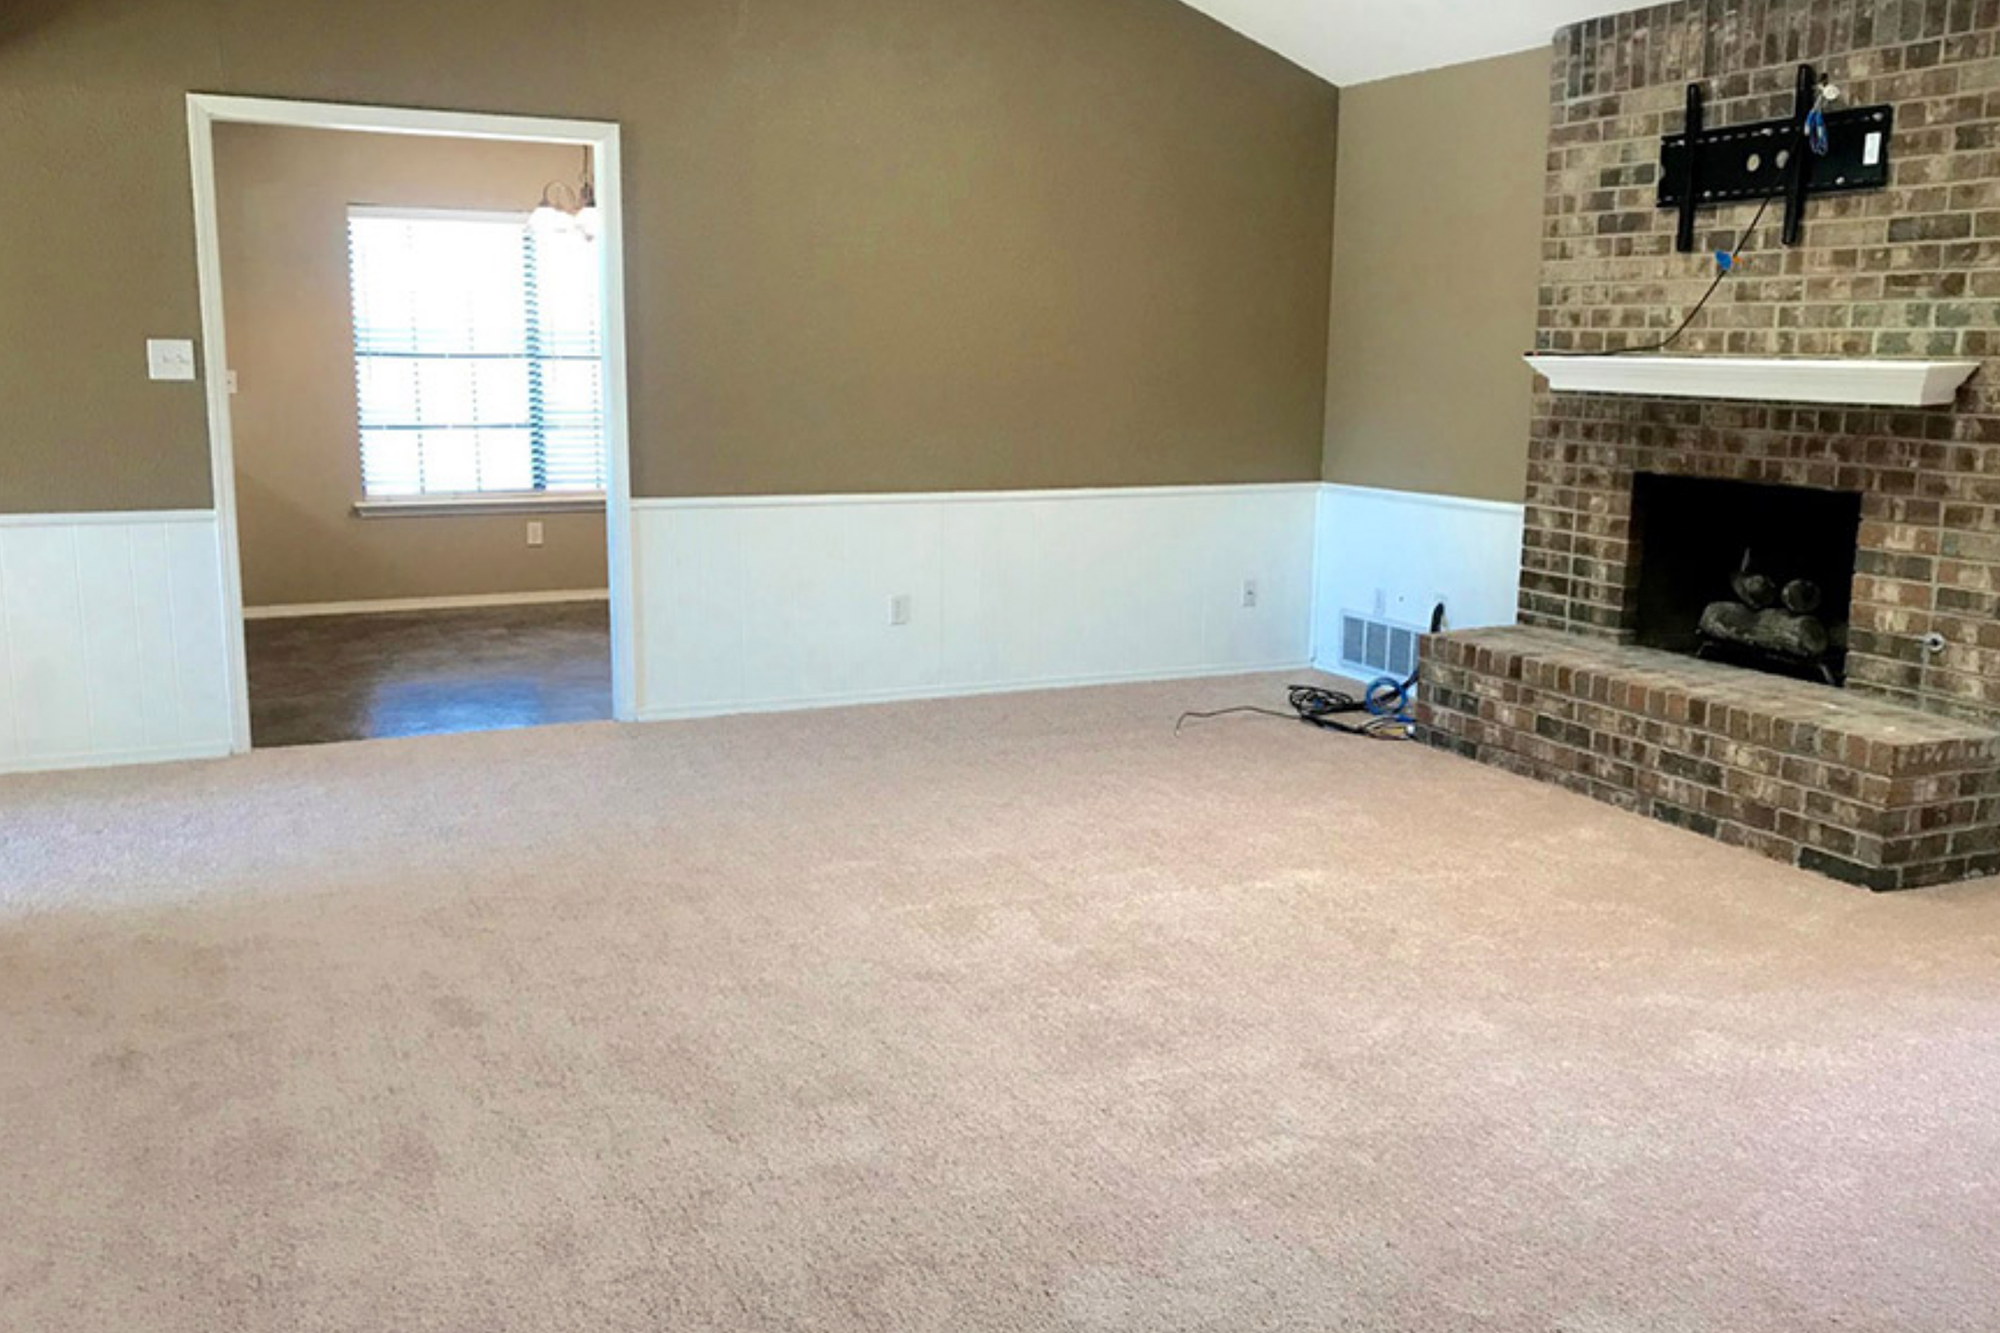 Skip the Remodel: Reasons to Build a New Home